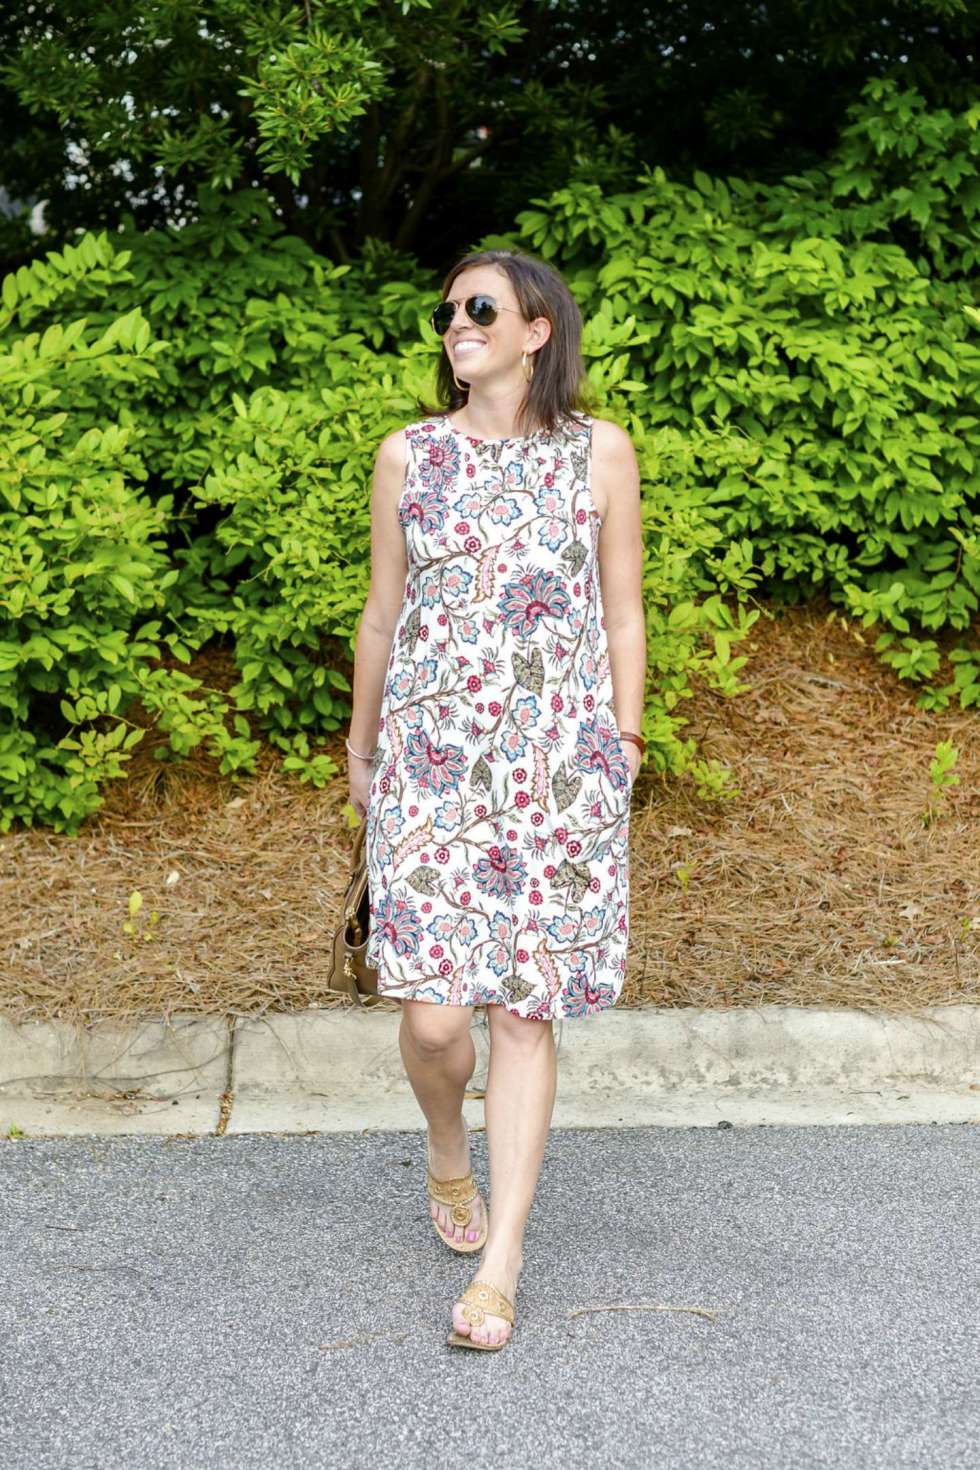 J. Jill Floral Dress for Now Through Fall - @mbg0112 - I'm Fixin' To